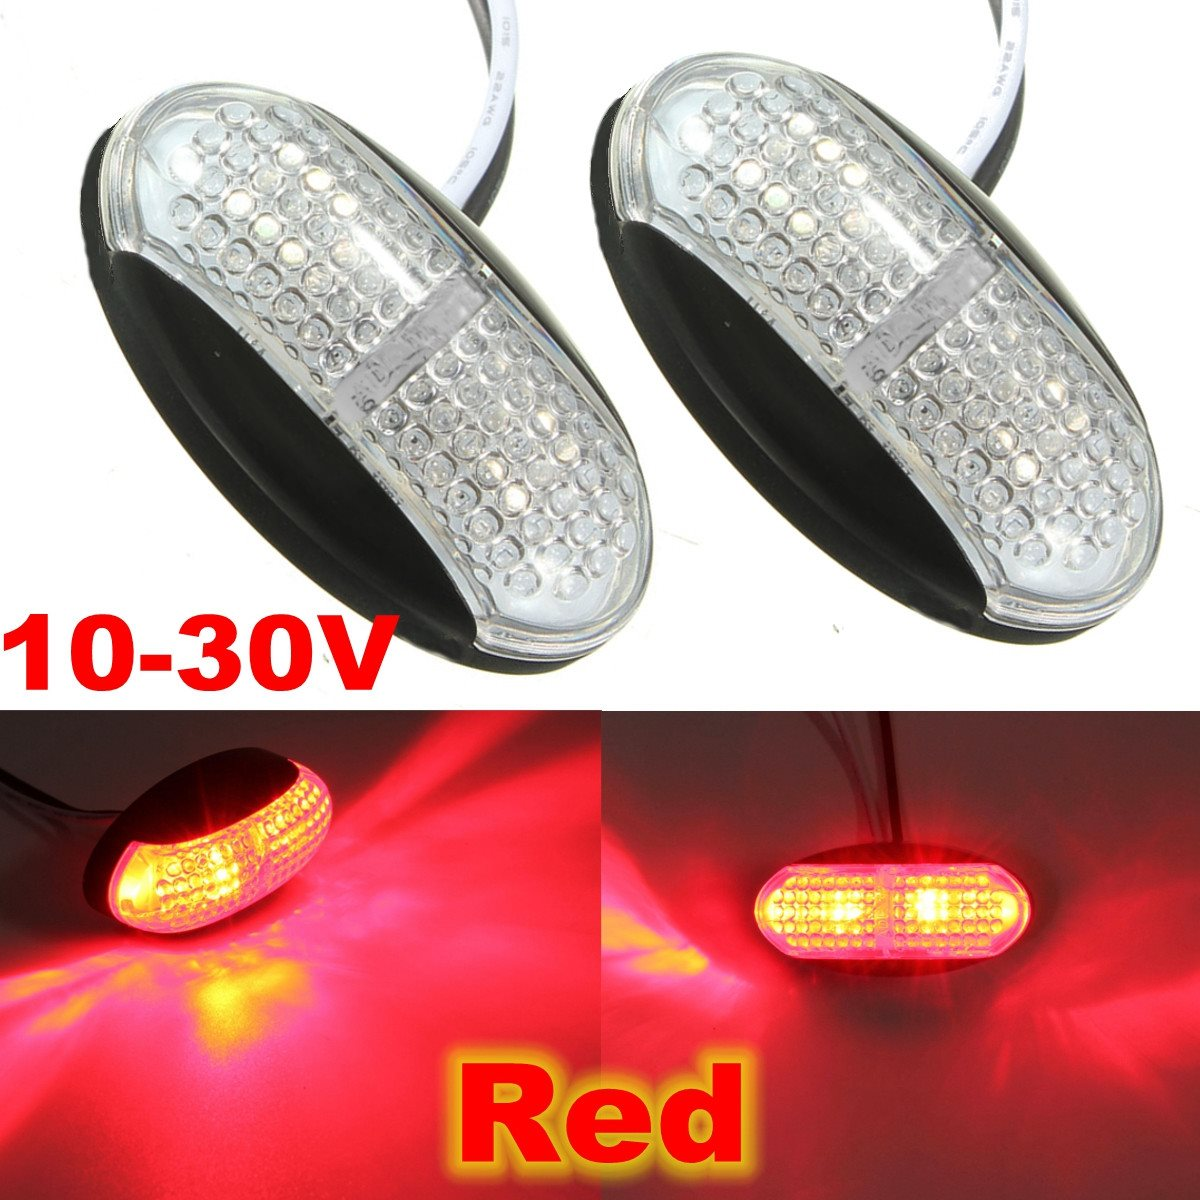 12v/24v LED Trailer Truck Clearance Side Marker Indicator Light Submersible With Lamp Clearance Lamp Car Styling 2pc led trailer truck clearance side marker light 12v 24v submersible width lamp clearance lamp car styling turck side light